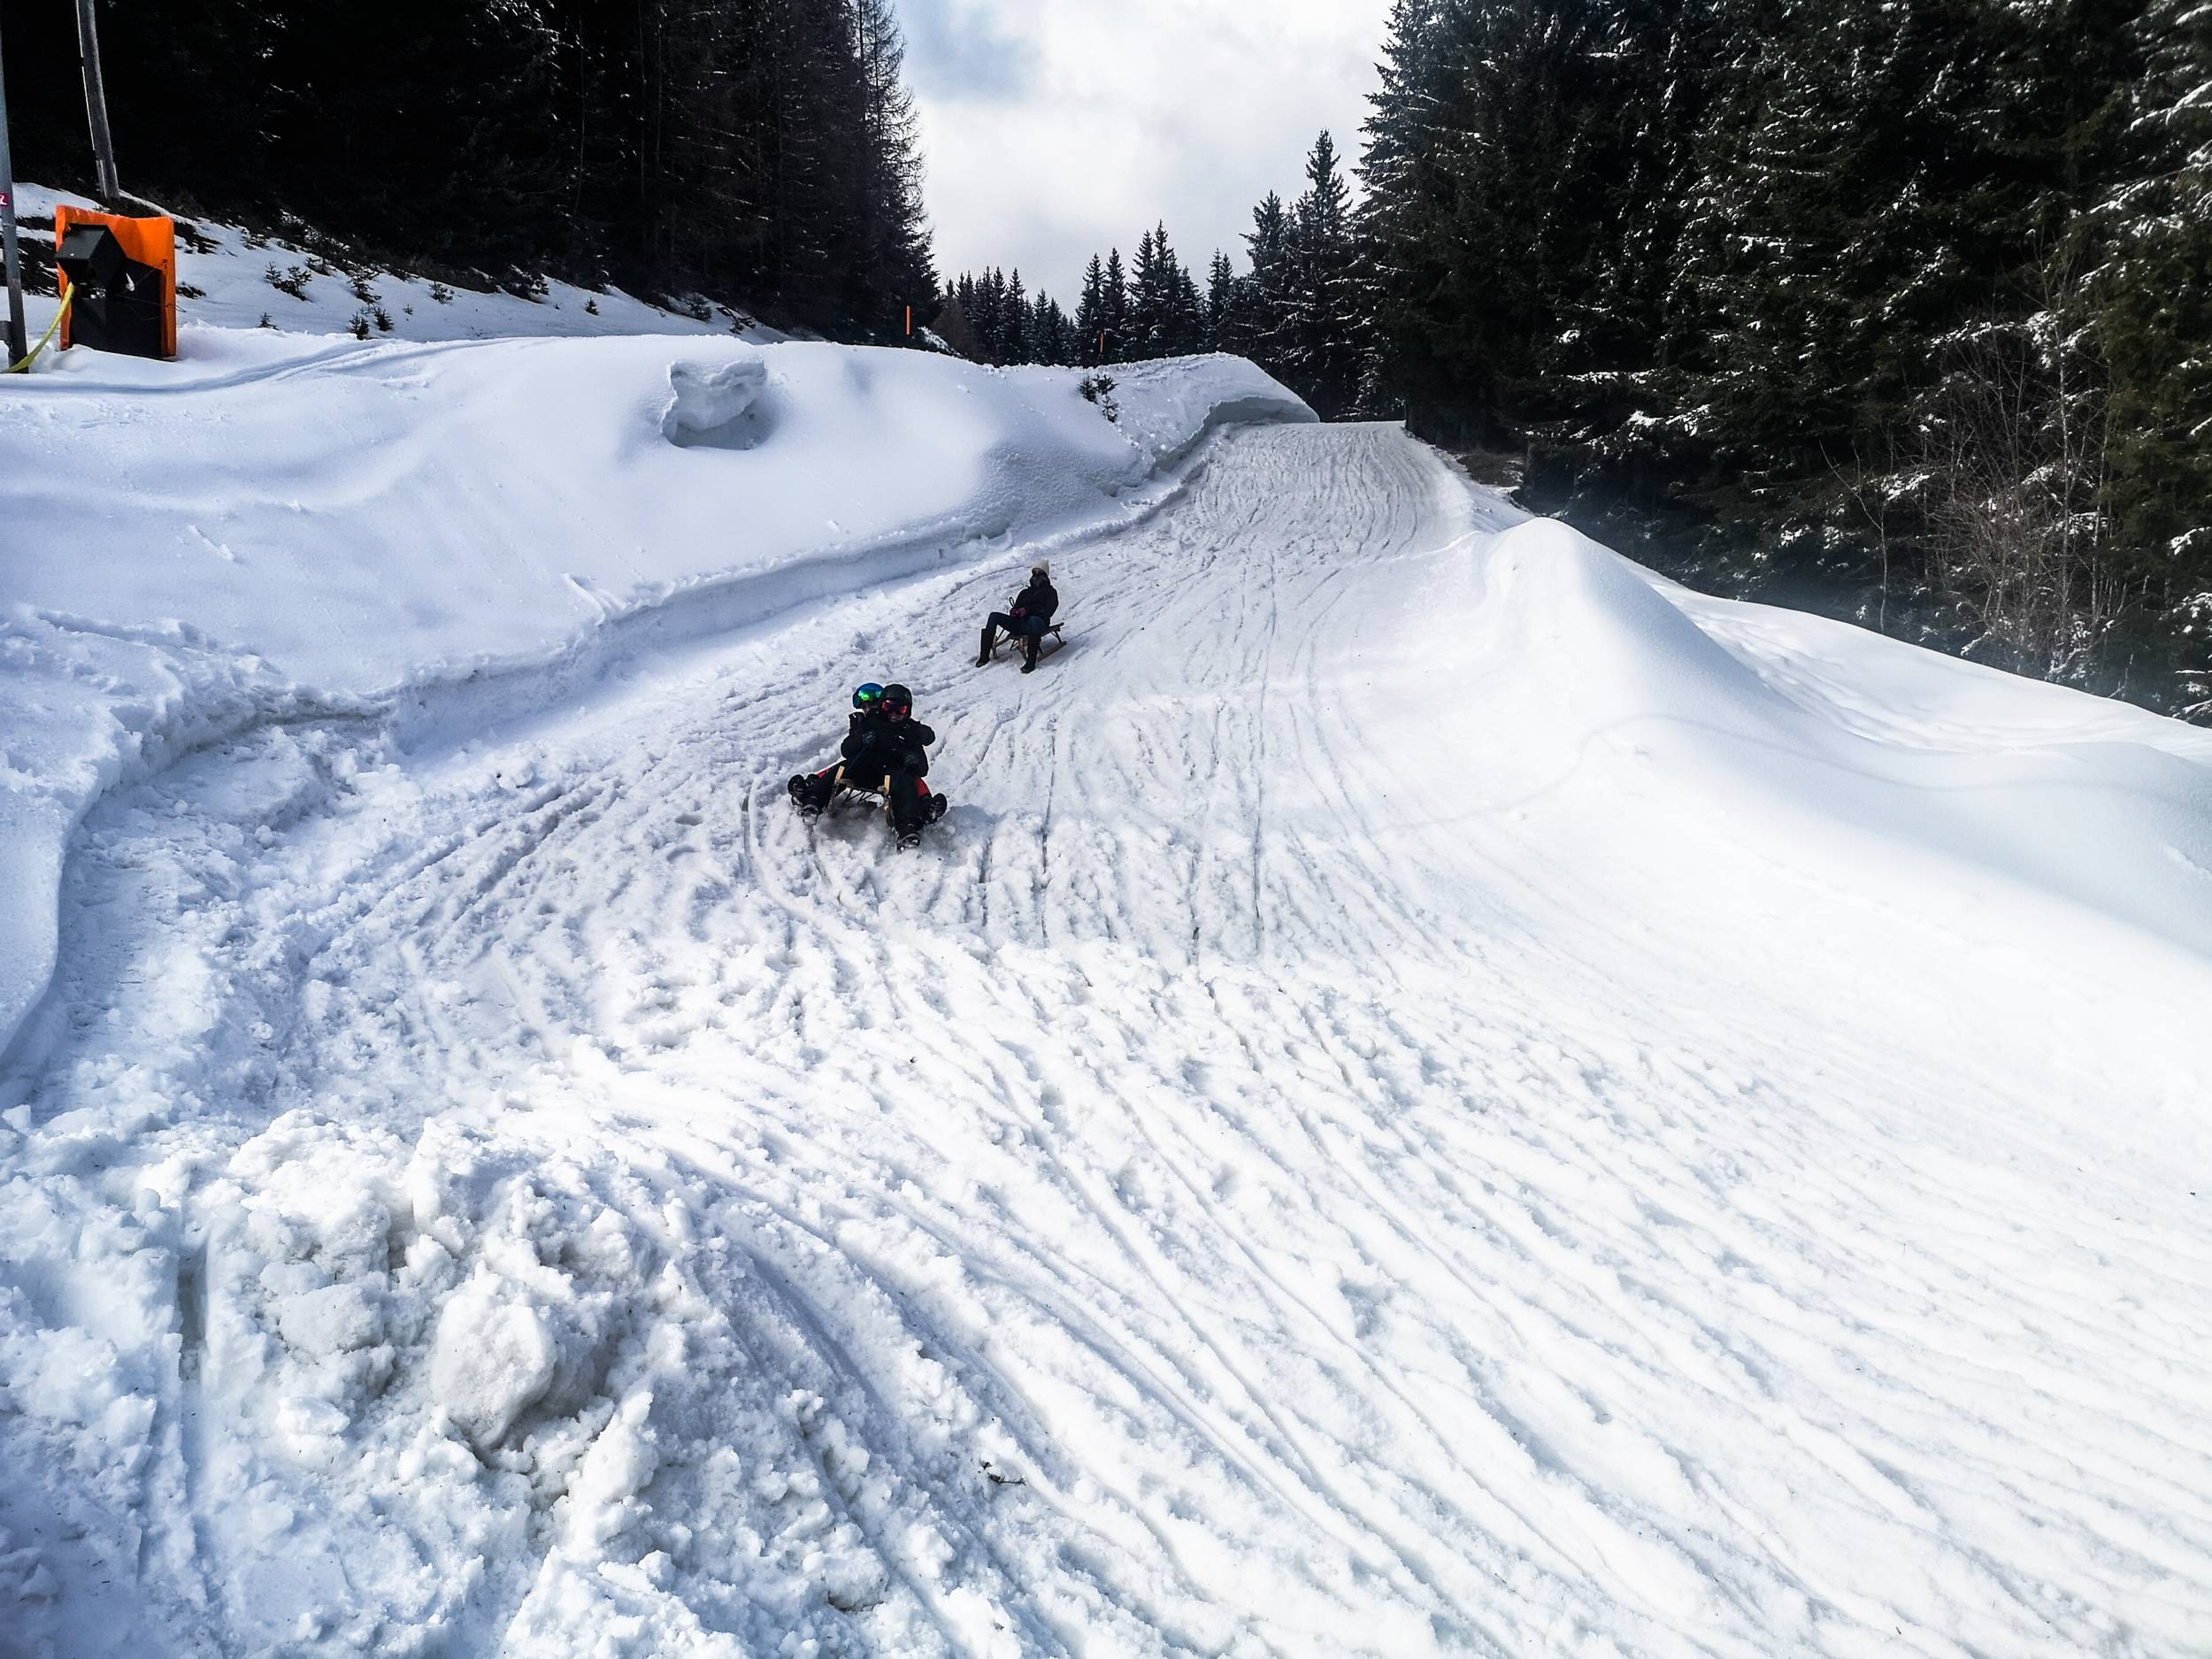 Even with your feet on the ground your sled will reach quite a speed. Breaking before any turn is essential. Photo by Alis Monte [CC BY-SA 4.0], via Connecting the Dots